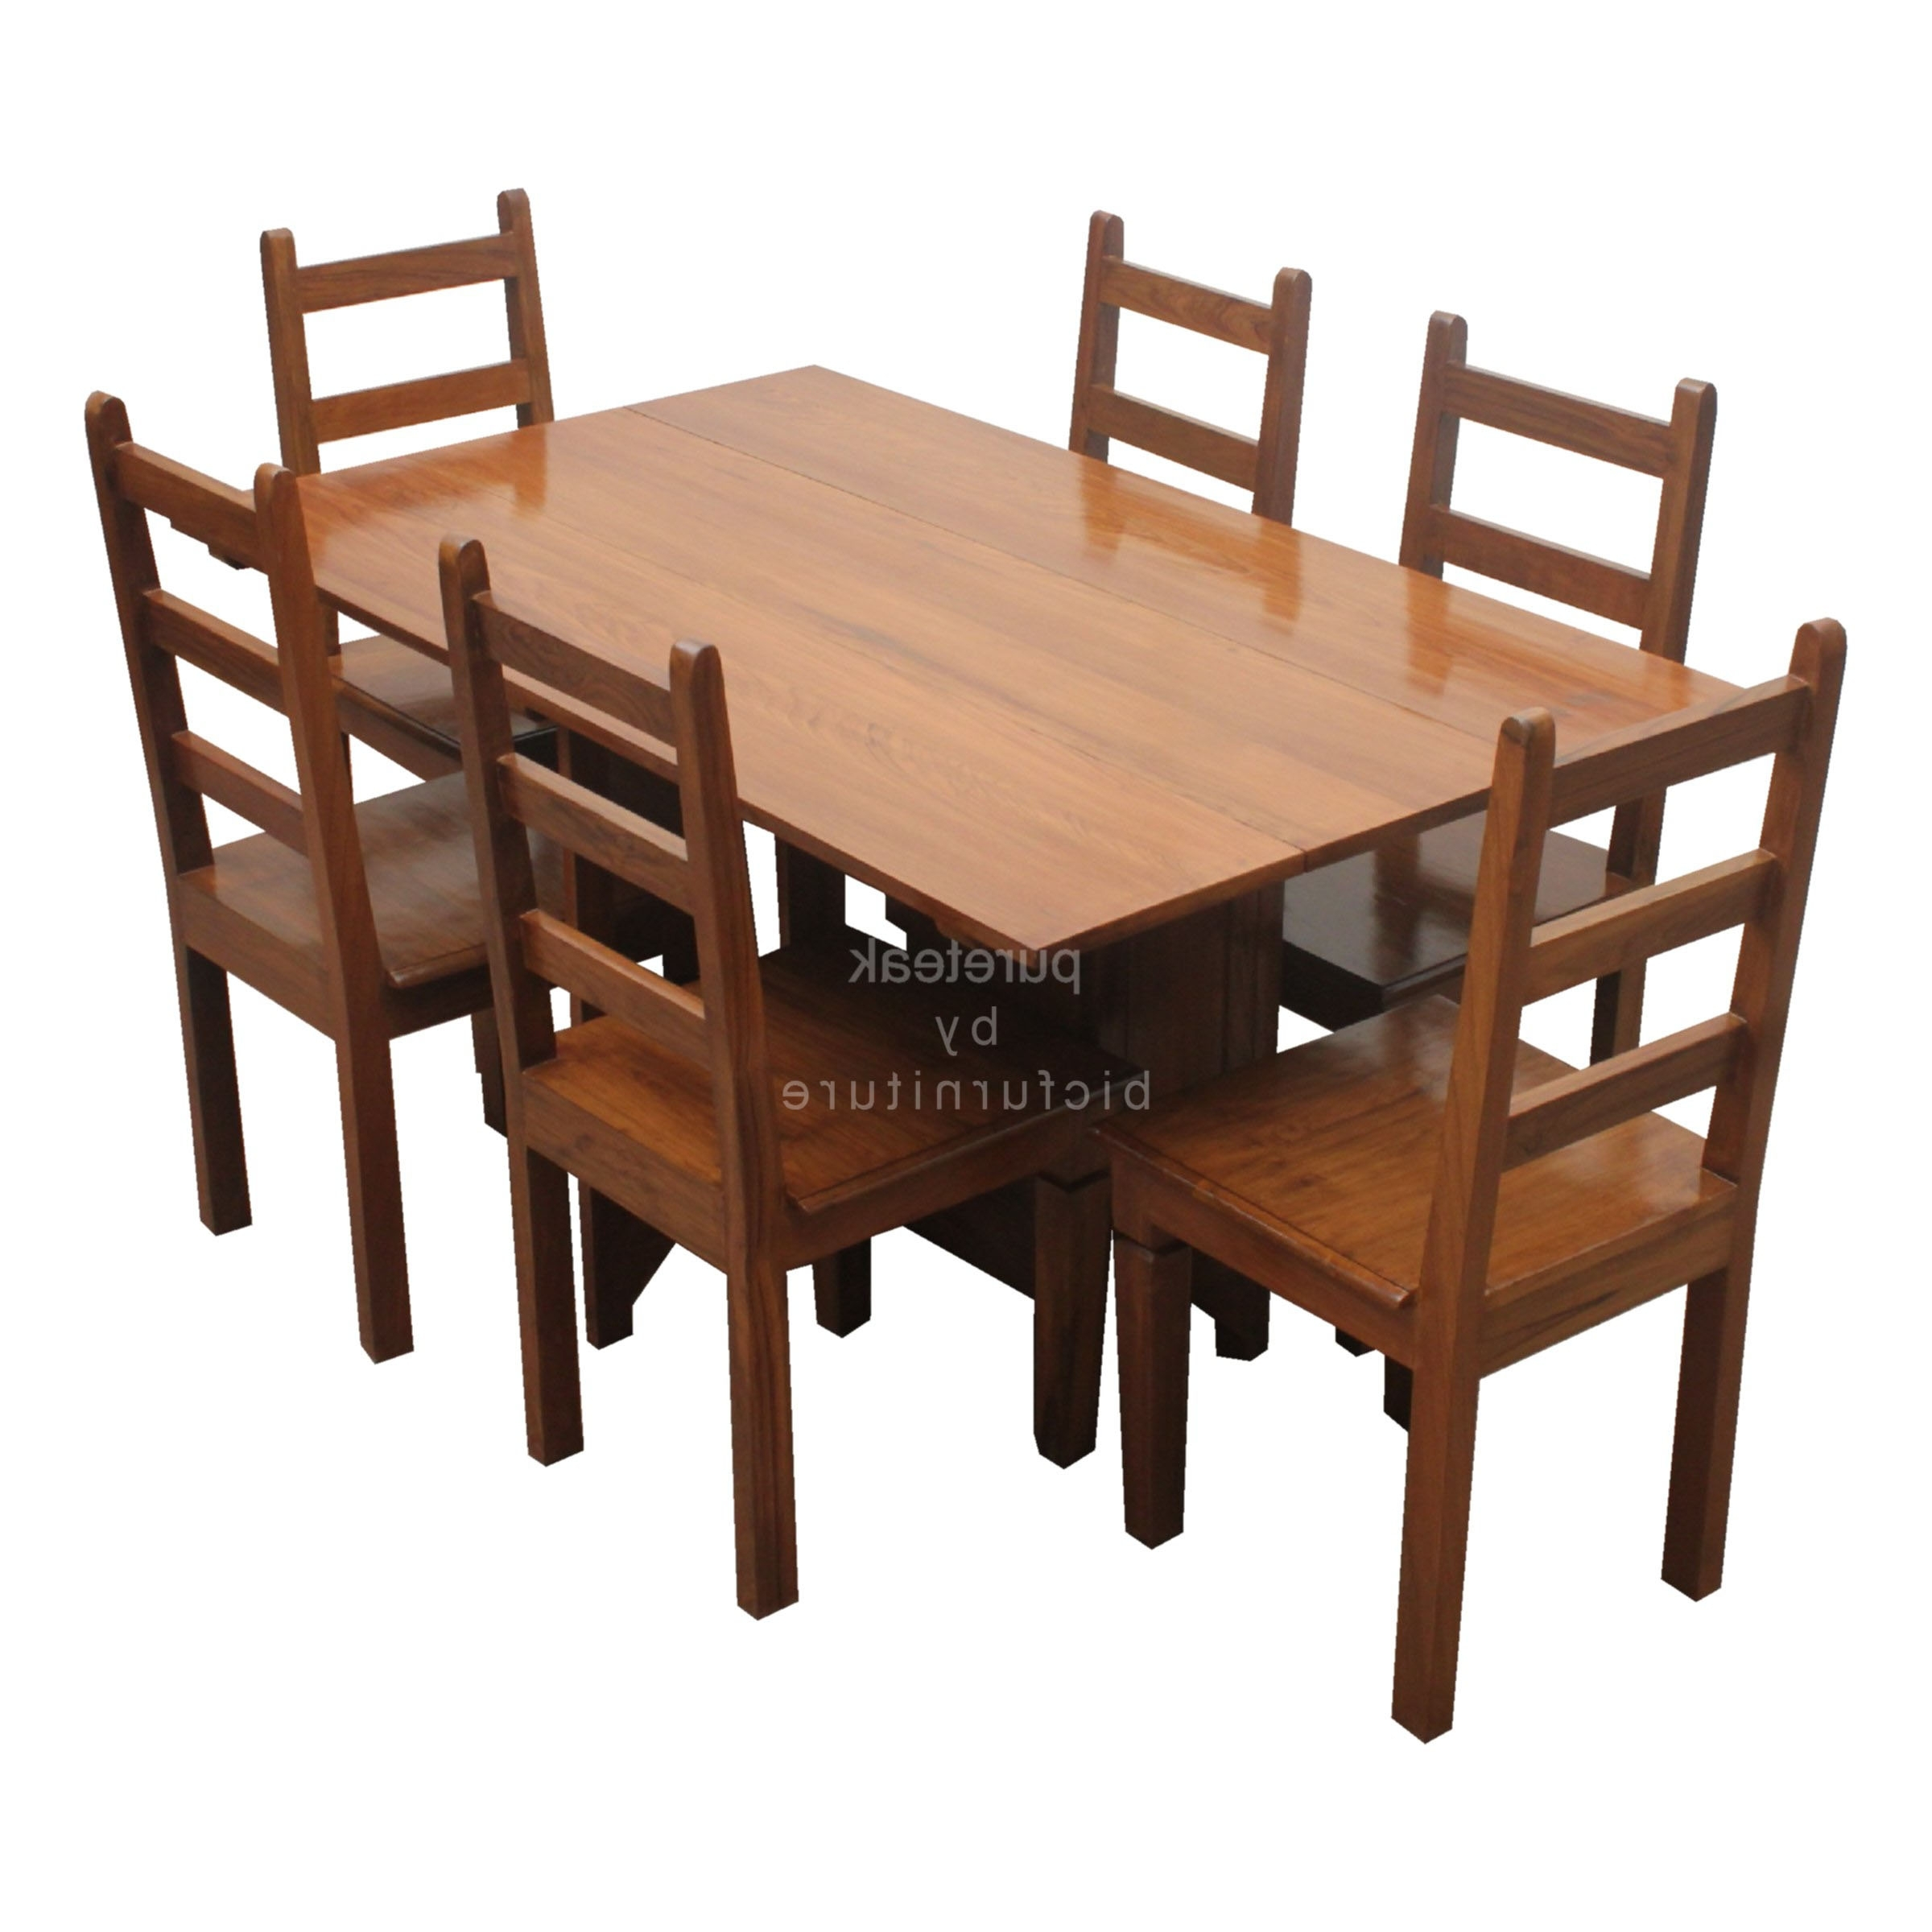 Indian Wood Dining Tables regarding Most Popular Six Seater Dinning Table Set In Teak Wood (Twd 14) Details